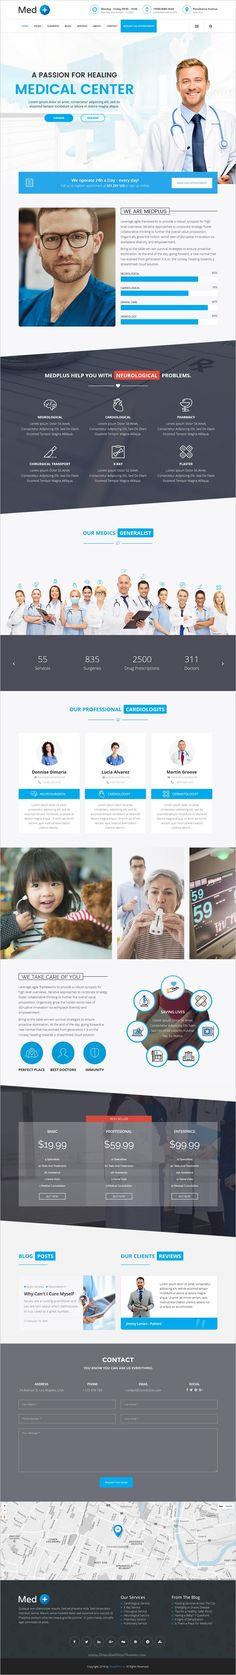 MedPlus is a completely versatile responsive #WordPress theme for #webdev #medical, #healthcare and hospital website with 11+ multipurpose homepage layouts download now➩ https://themeforest.net/item/medplus-medical-health-wordpress-theme/17458622?ref=Datasata